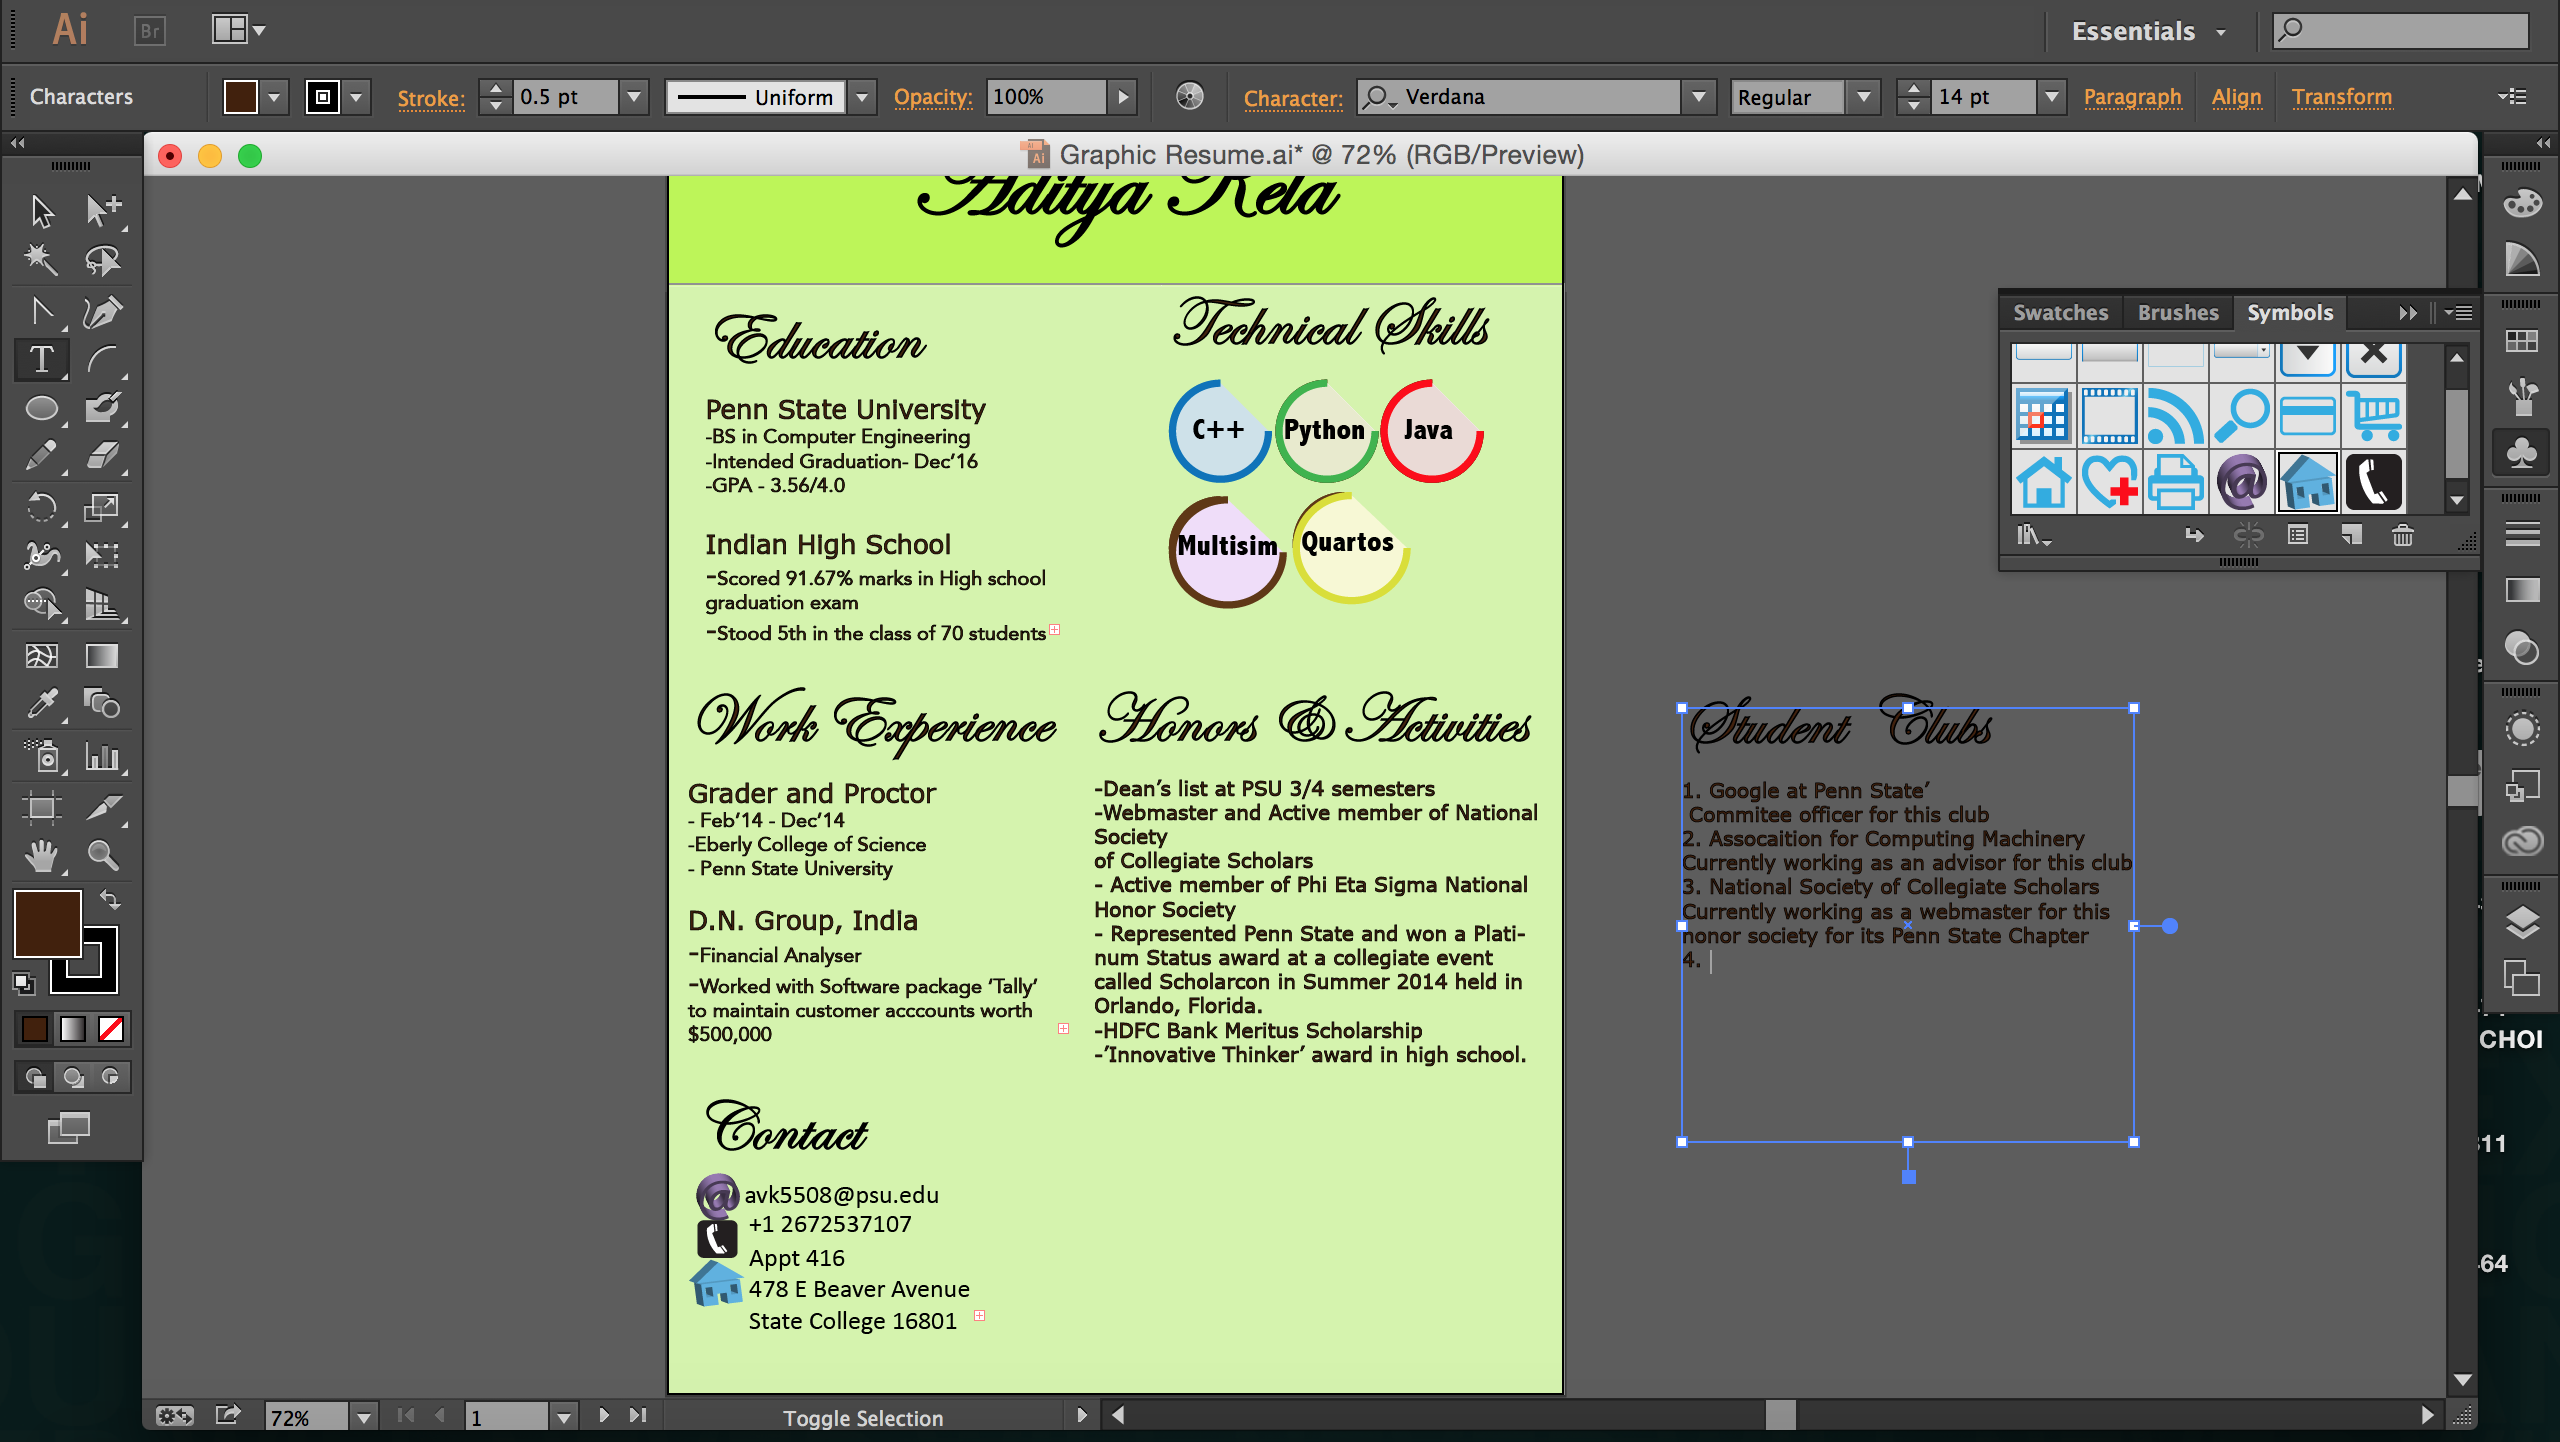 graphic resume and adobe illustrator art003 blog